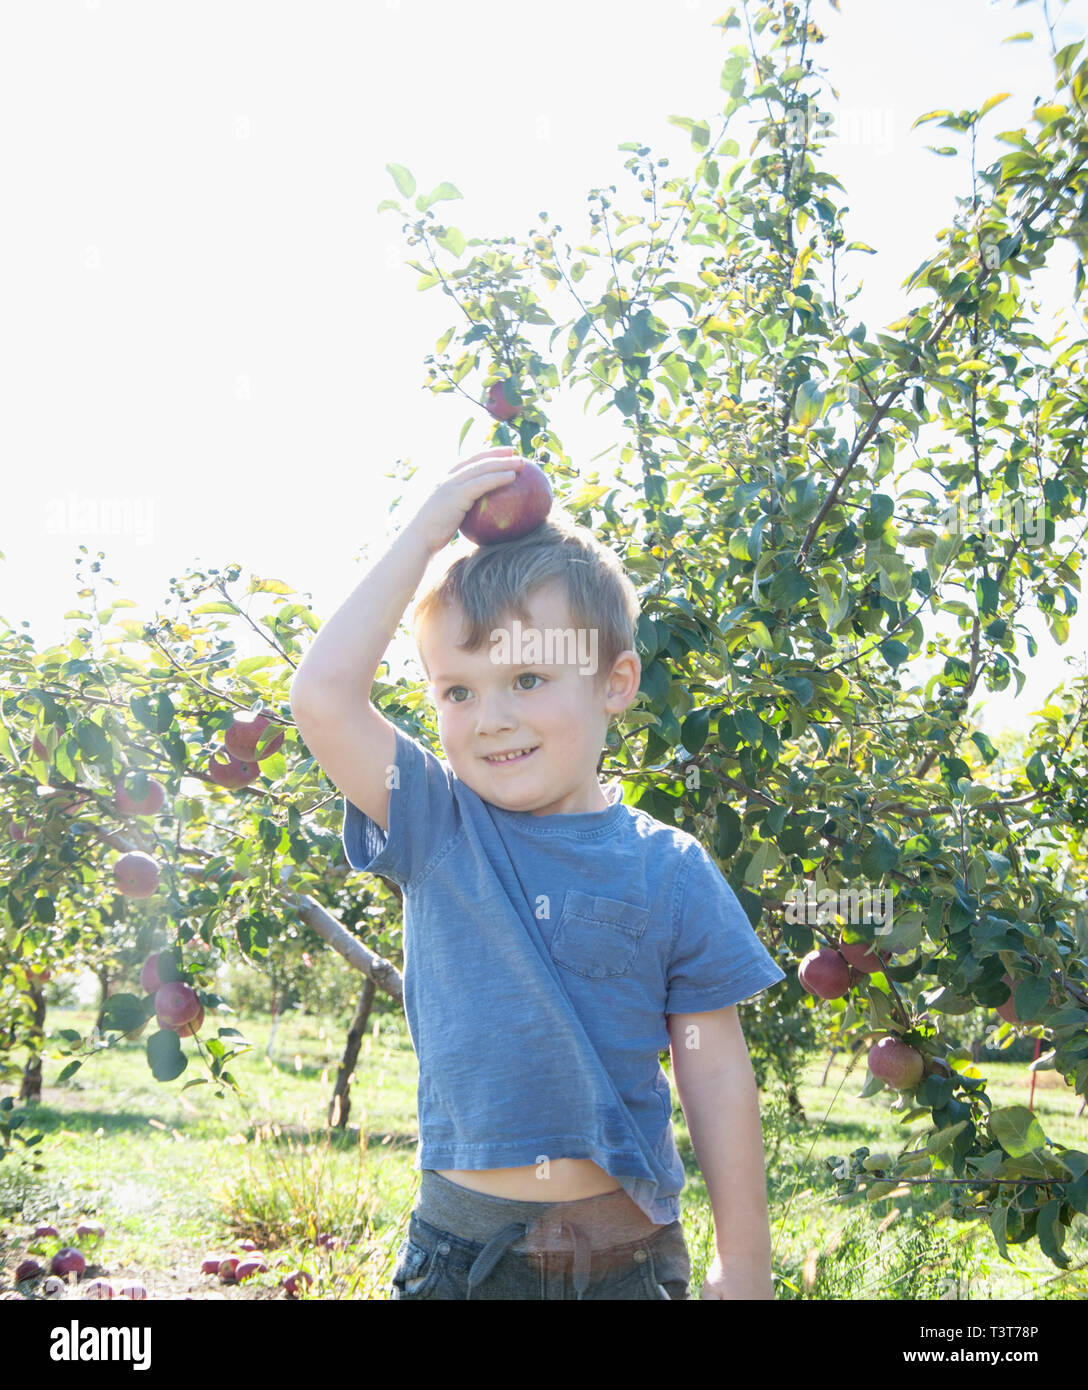 Boy balancing apple on head in orchard - Stock Image